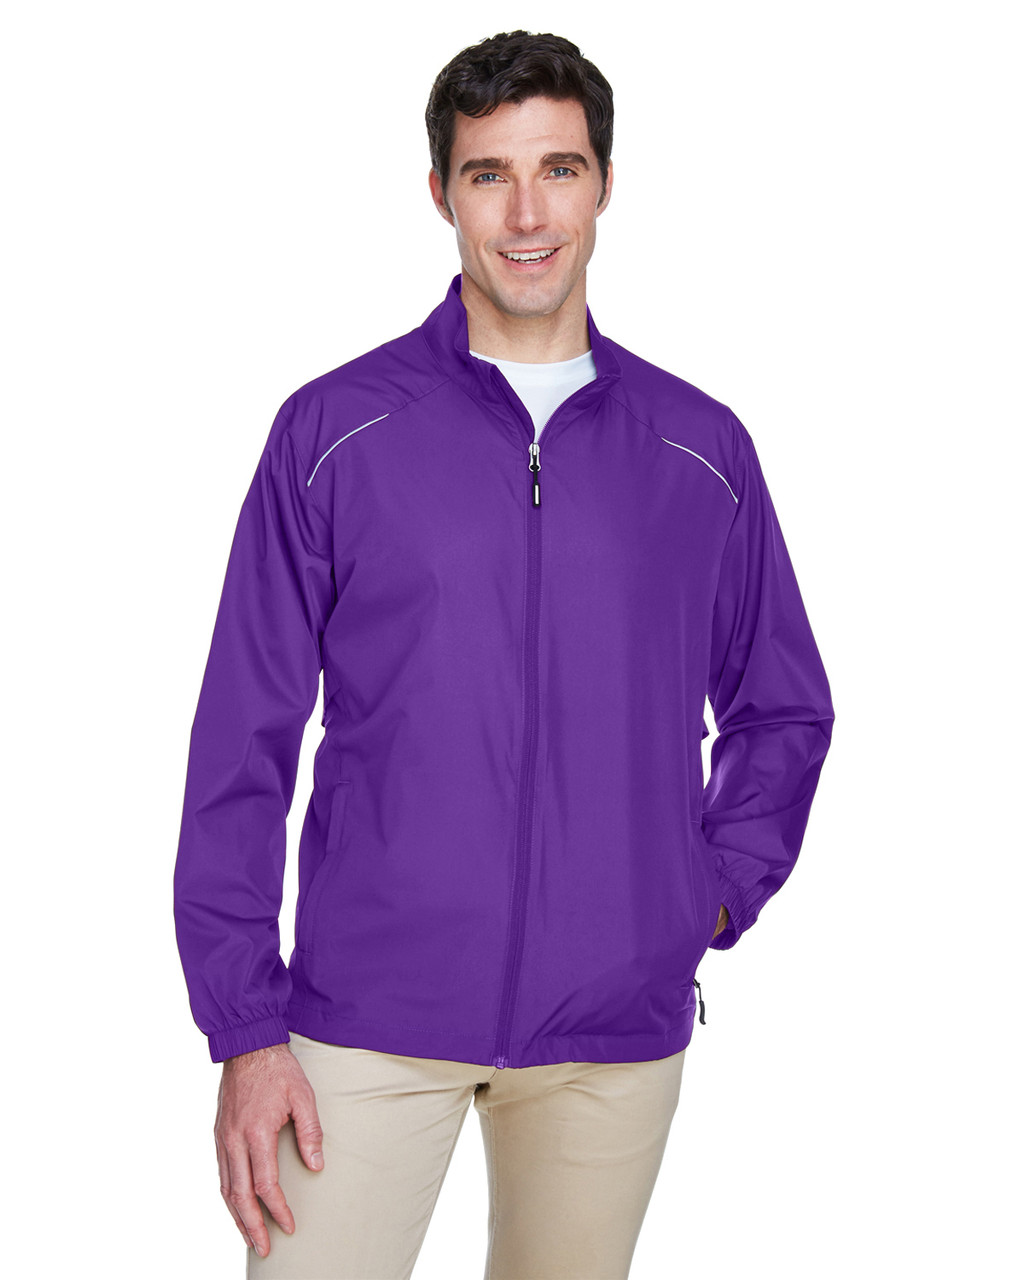 Campus Purple - 88183 Ash City - Core 365 Motivate Unlined Lightweight Jacket | Blankclothing.ca